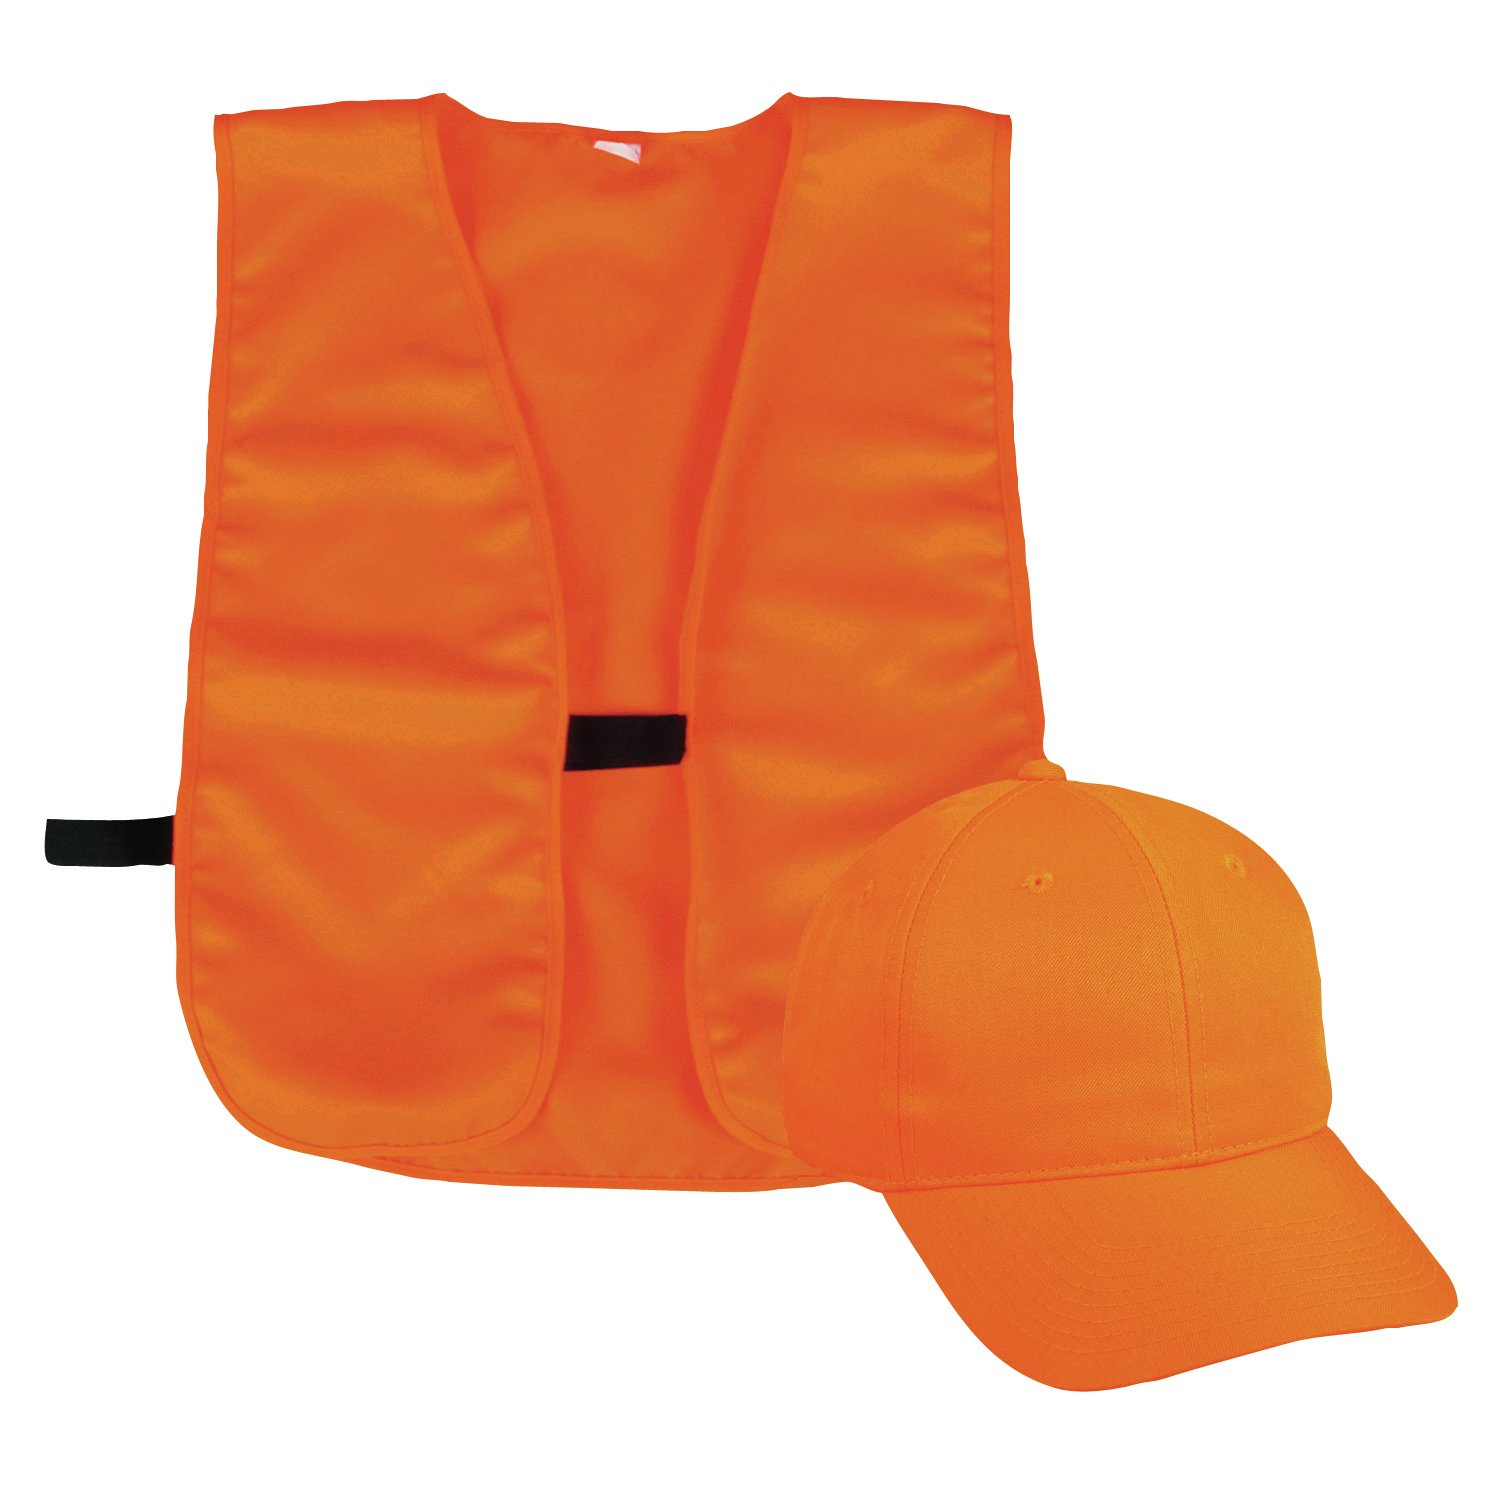 Outdoor Cap Blaze Cap and Vest, 1 Unit, Blaze Orange by Outdoor Cap (Image #1)